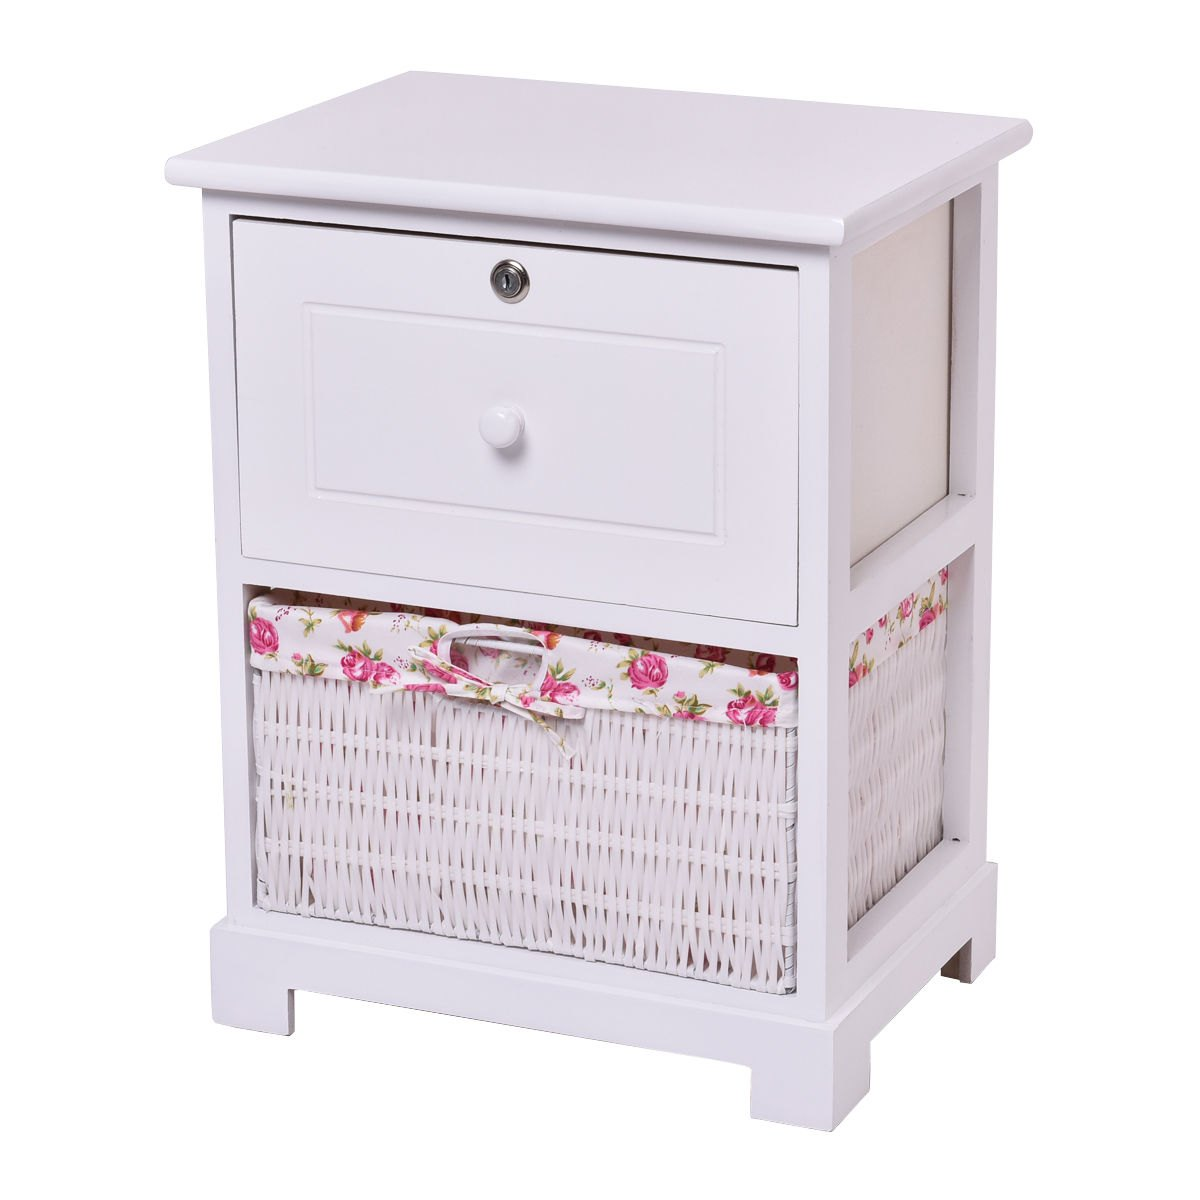 way white end side accent table night stand locked drawer basket bedside height distressed wood coffee and tables affordable console pier imports bedroom furniture target